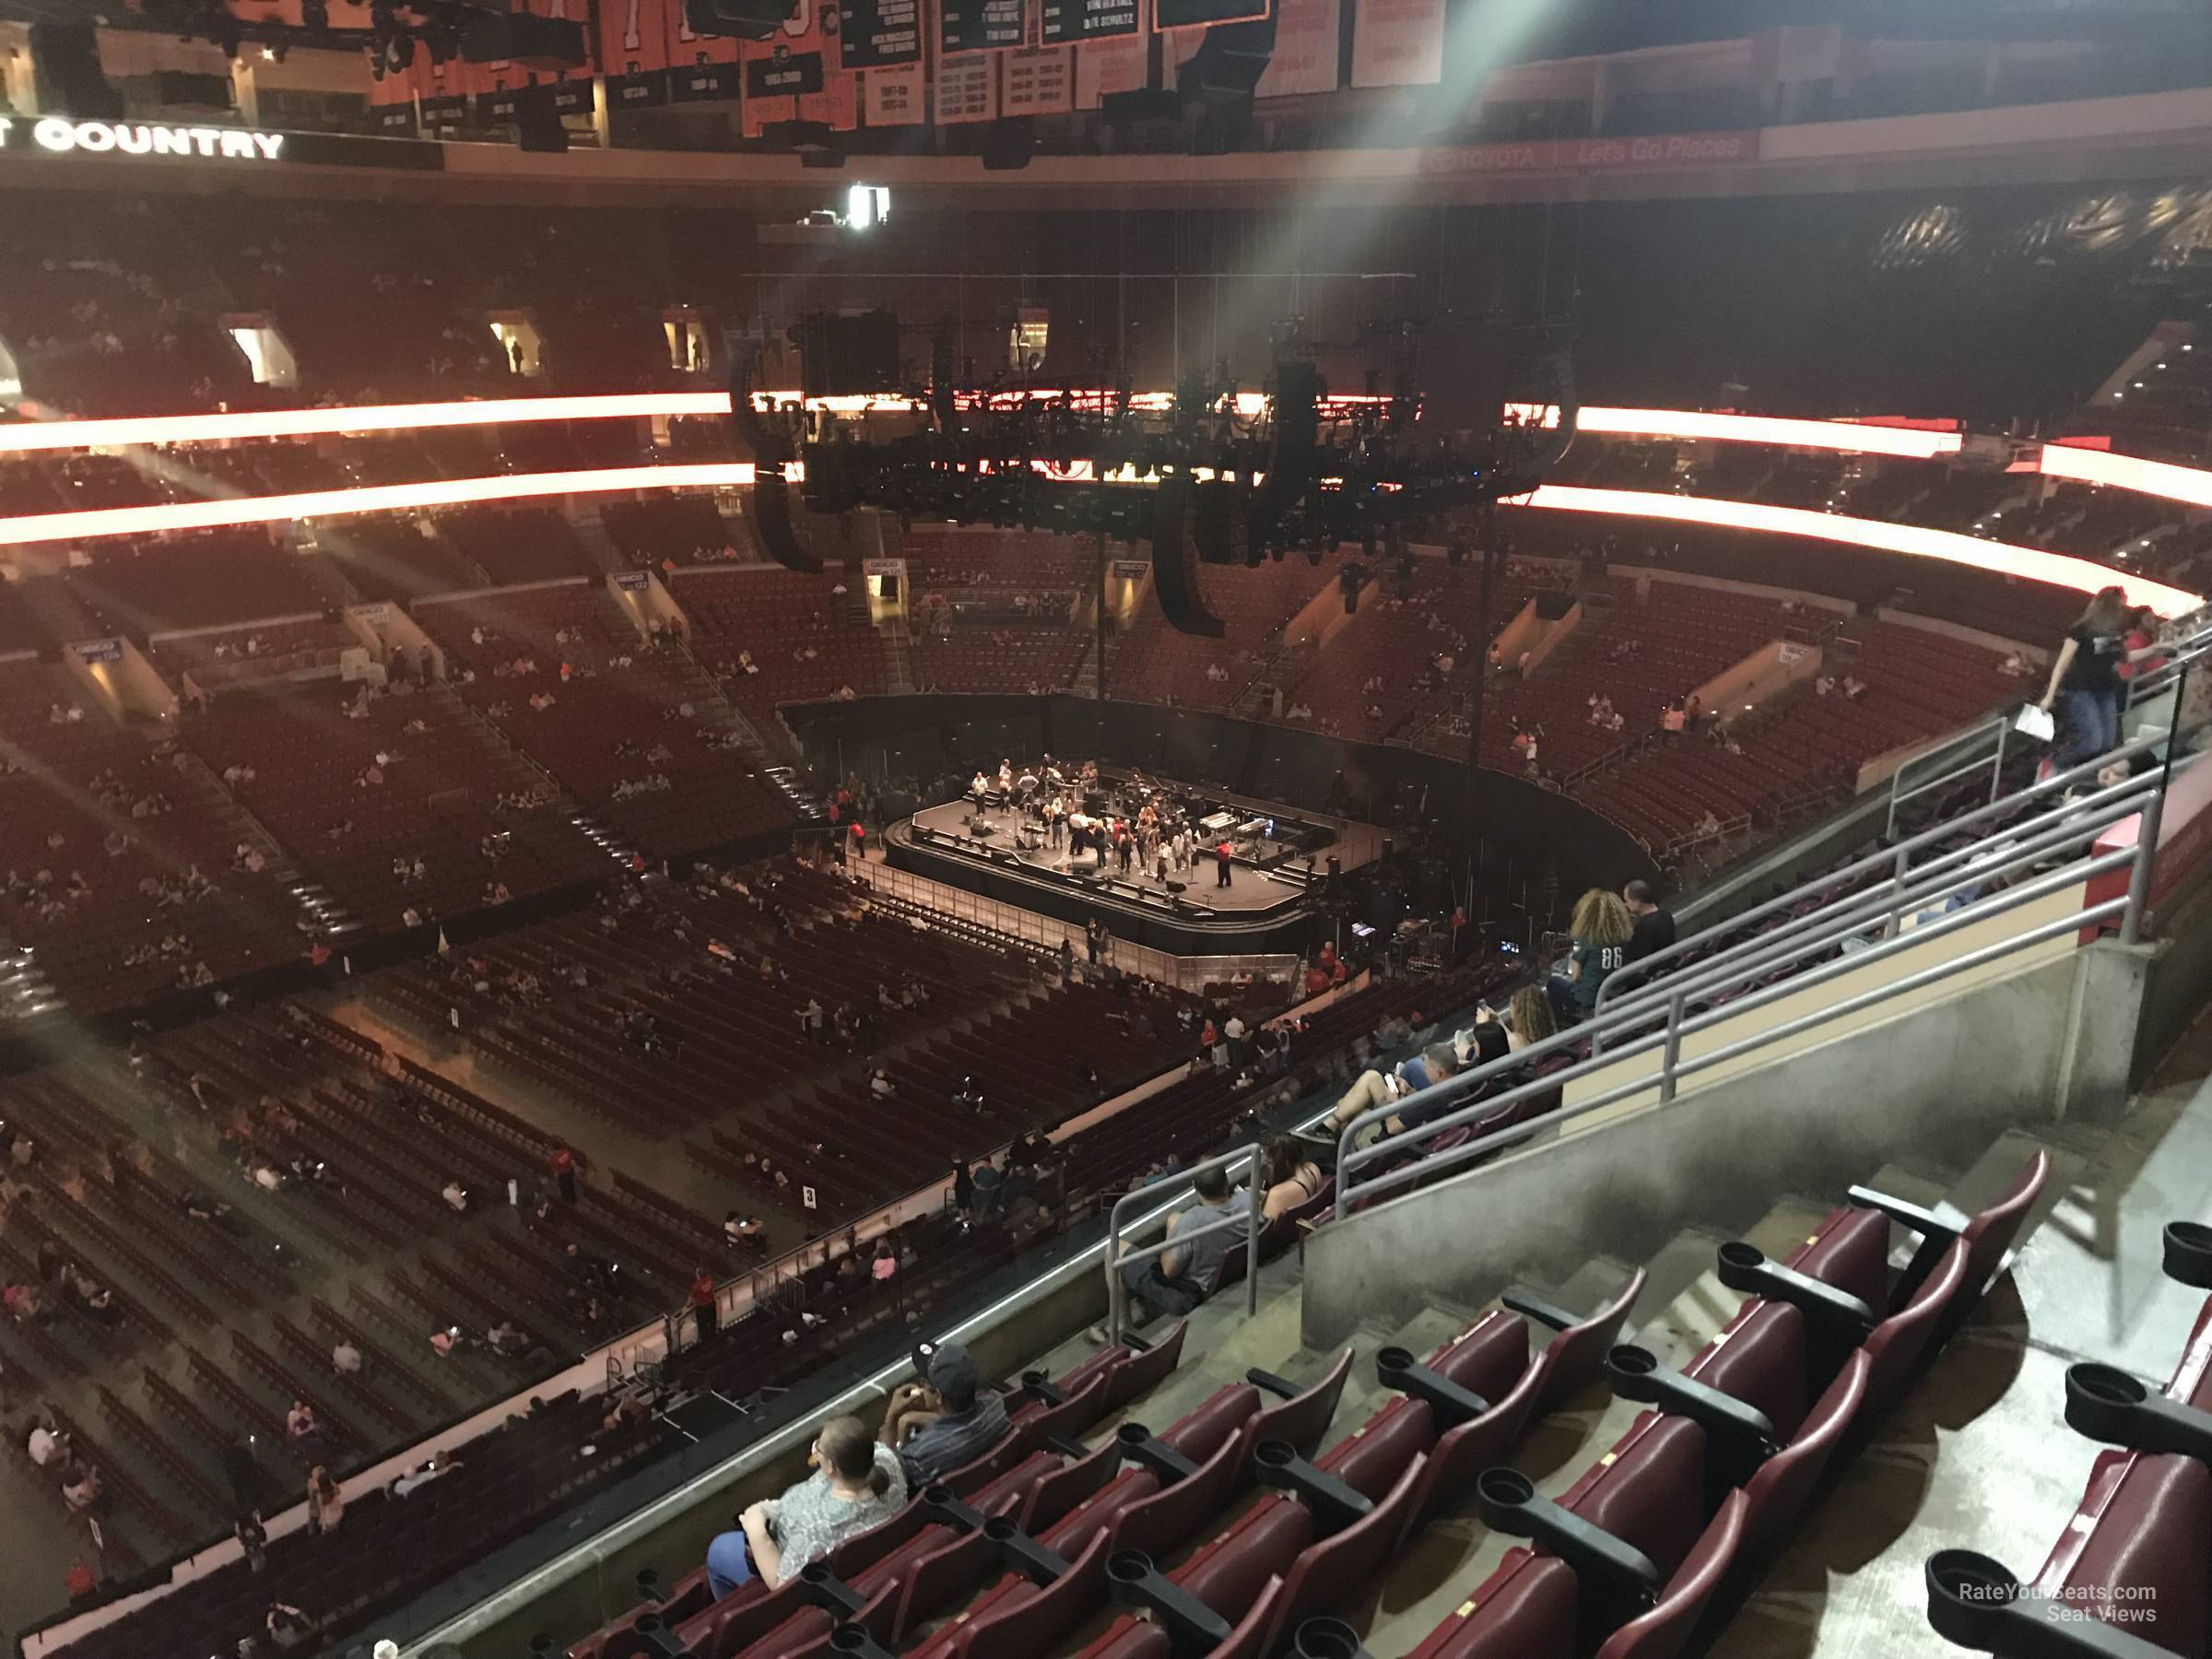 Section 211 seat view